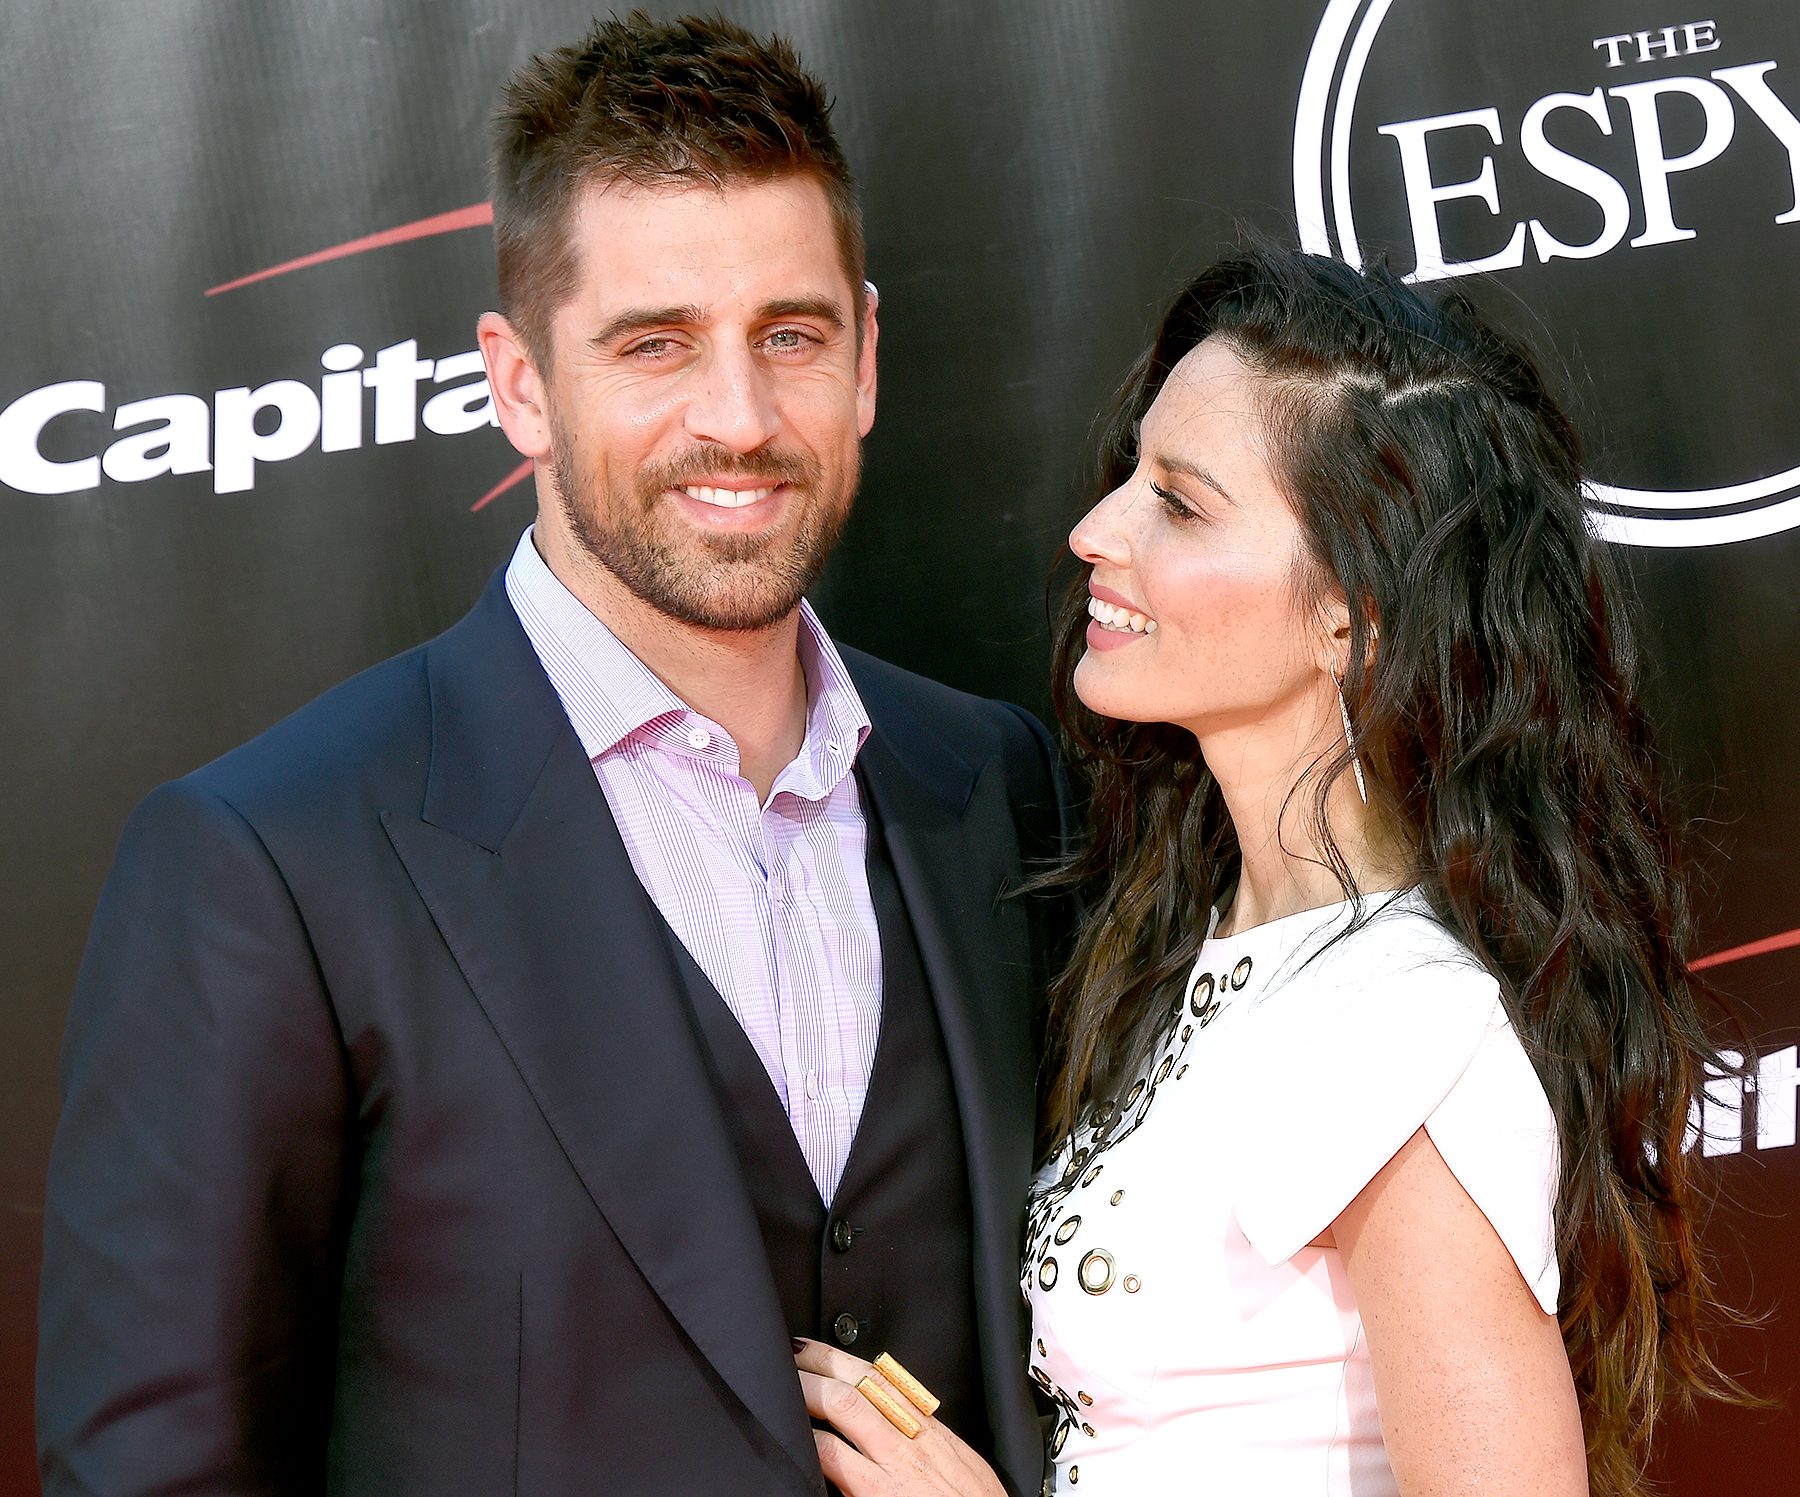 Olivia Munn and Aaron Rodgers arrive at The 2016 ESPYS at Microsoft Theater on July 13, 2016 in Los Angeles, California.